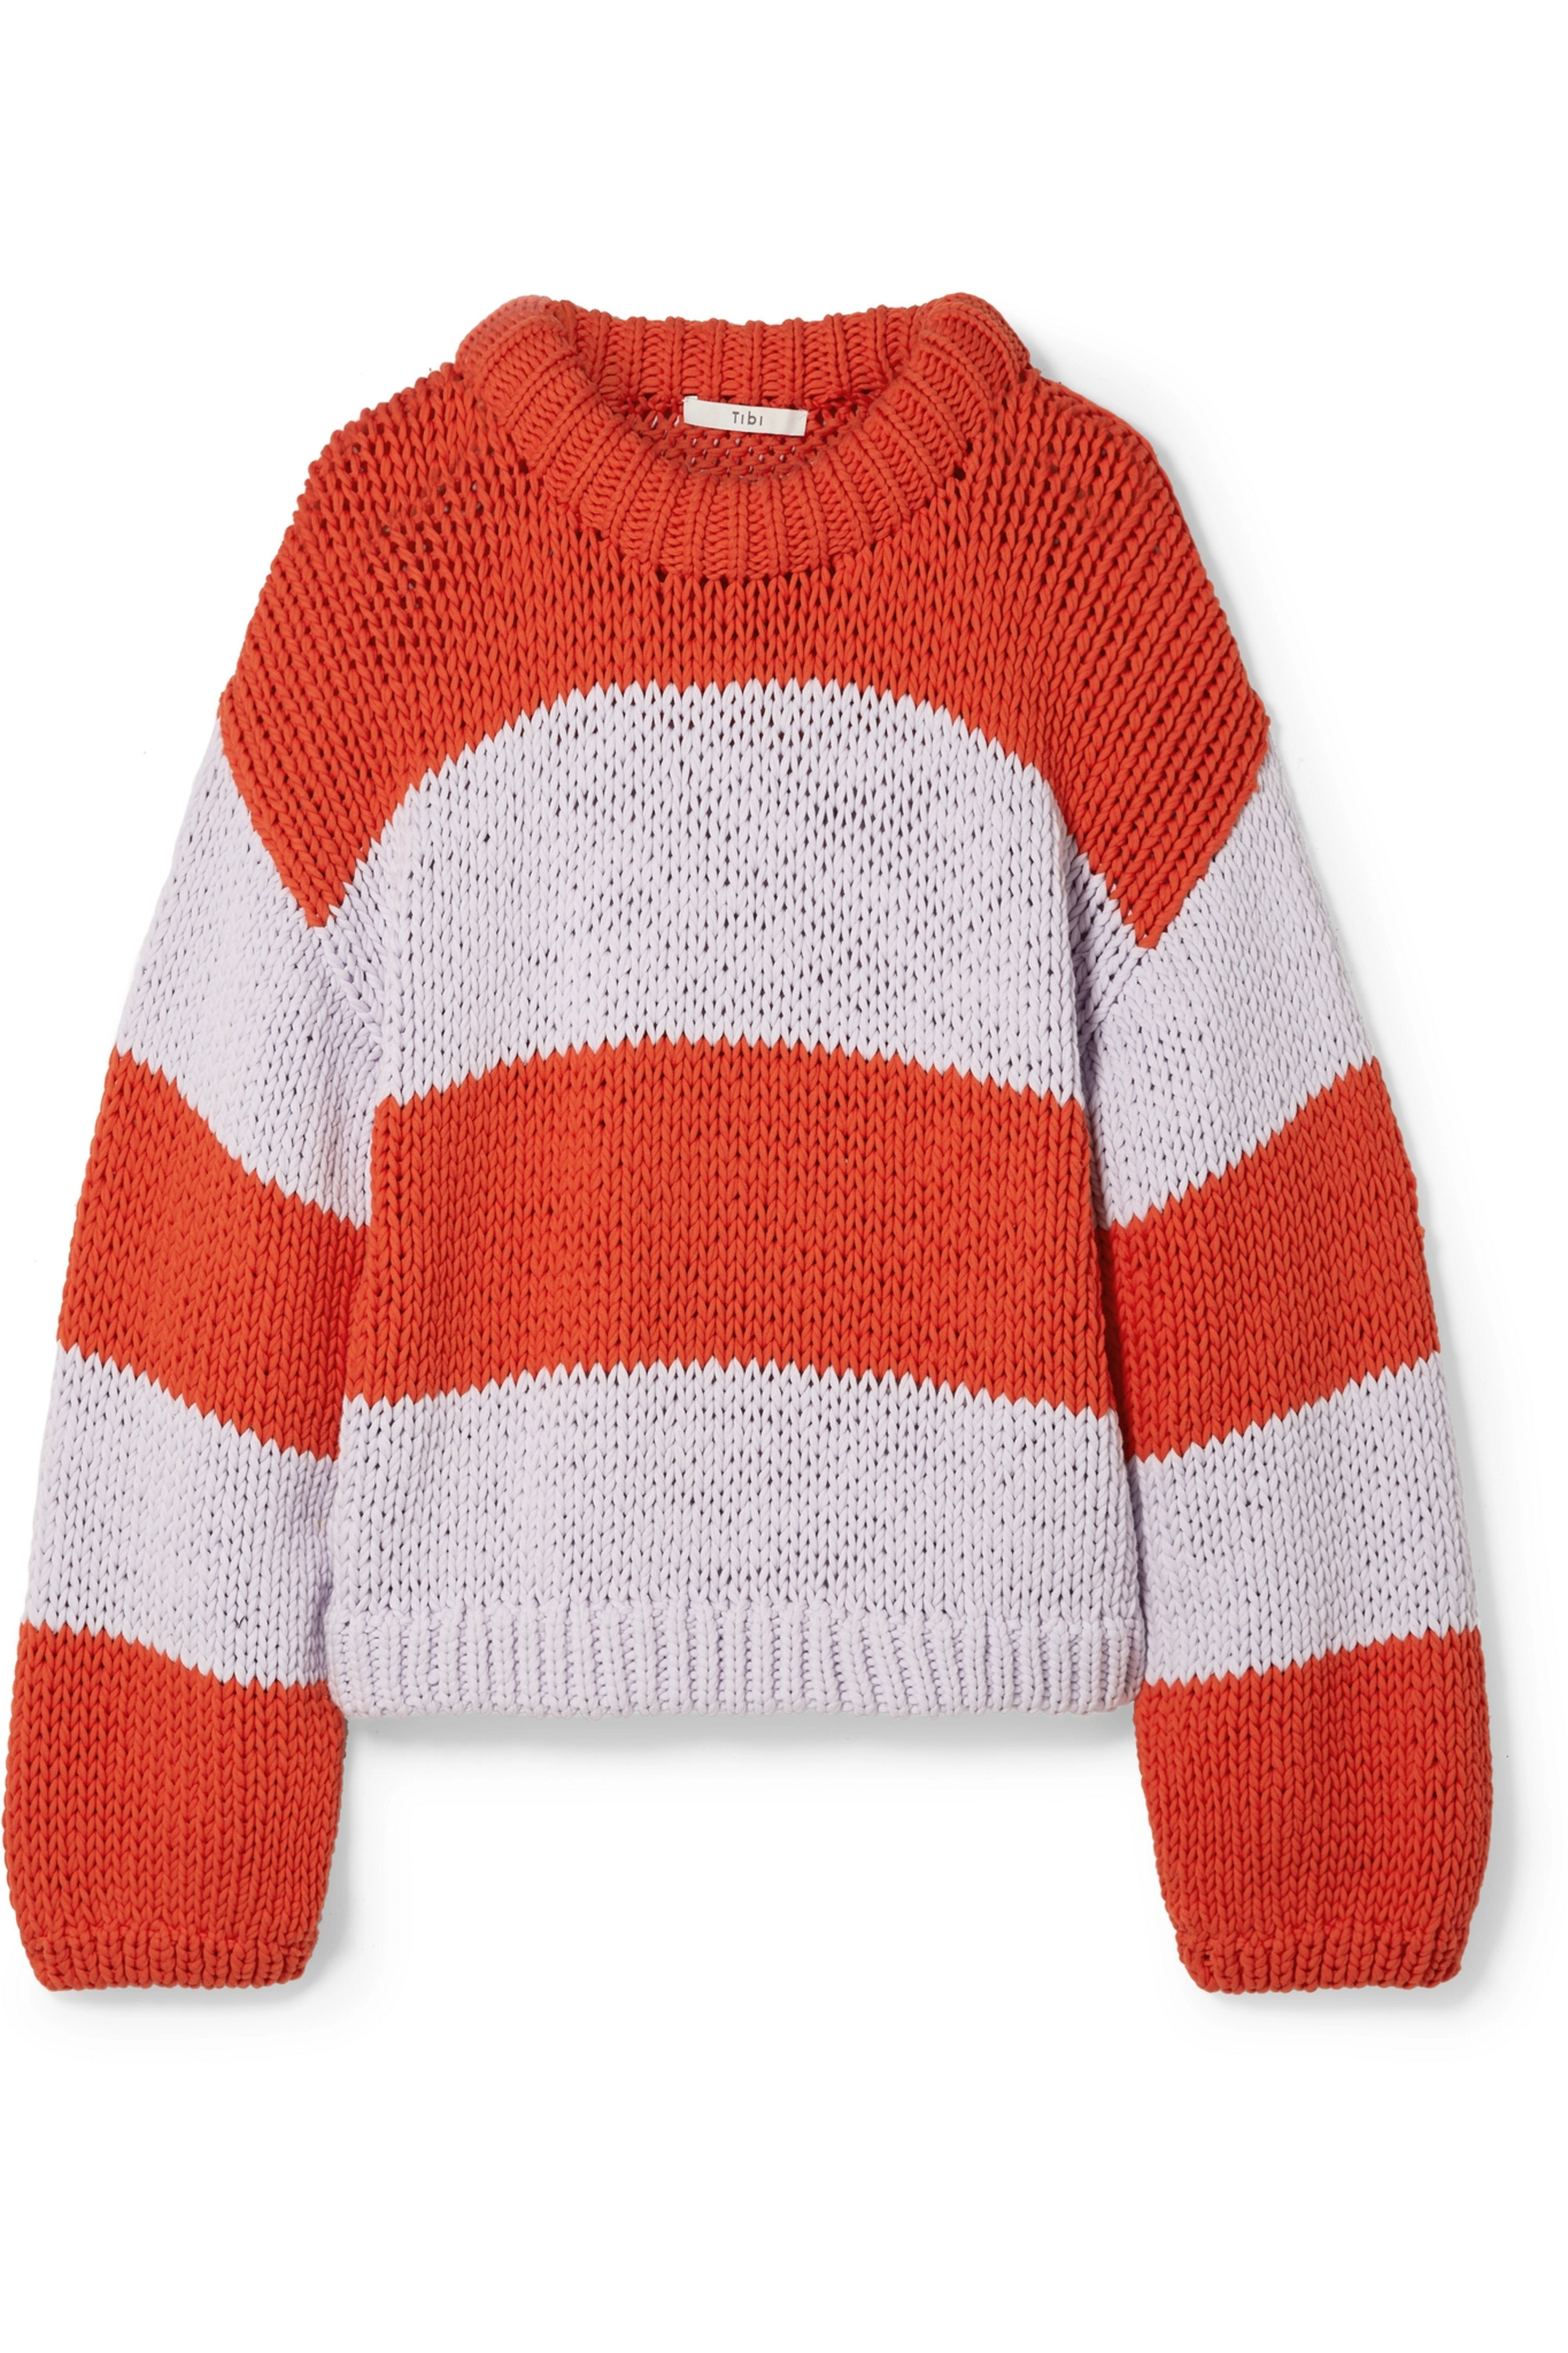 Oversized striped cotton-blend sweater